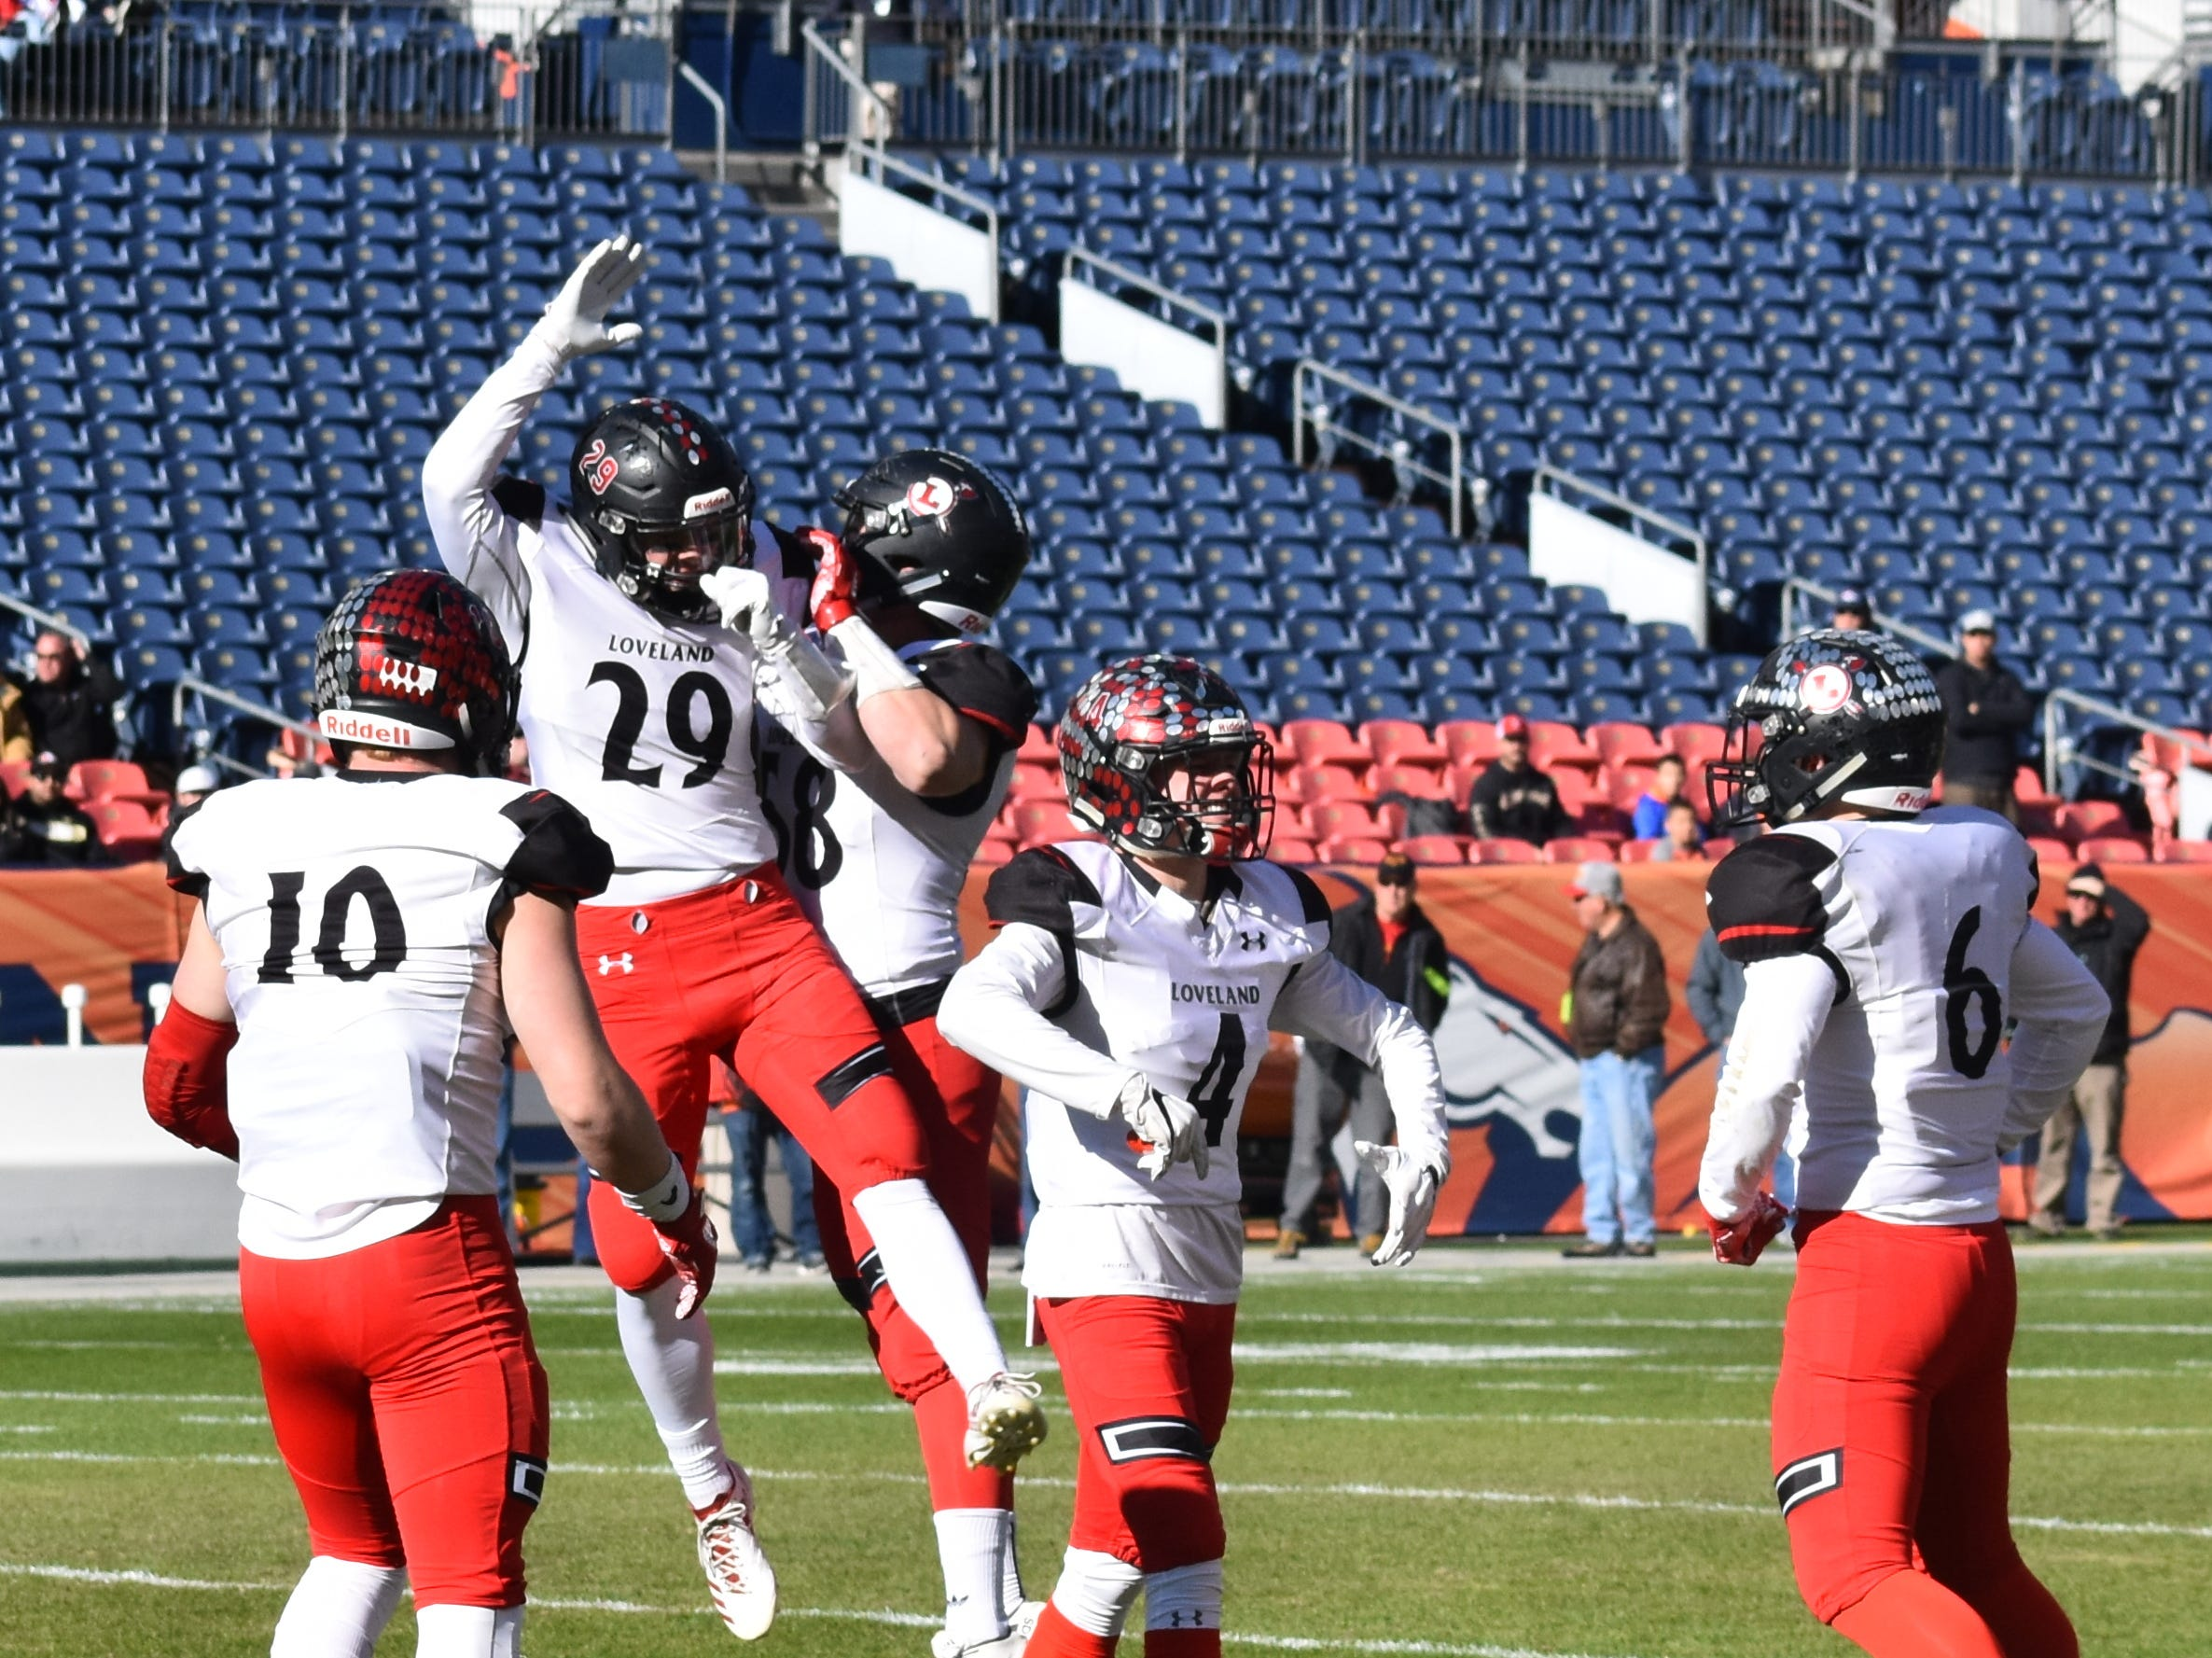 Loveland High football player Michael Lewis celebrates a big play with teammates during Saturday's Class 4A state championship game in Denver.